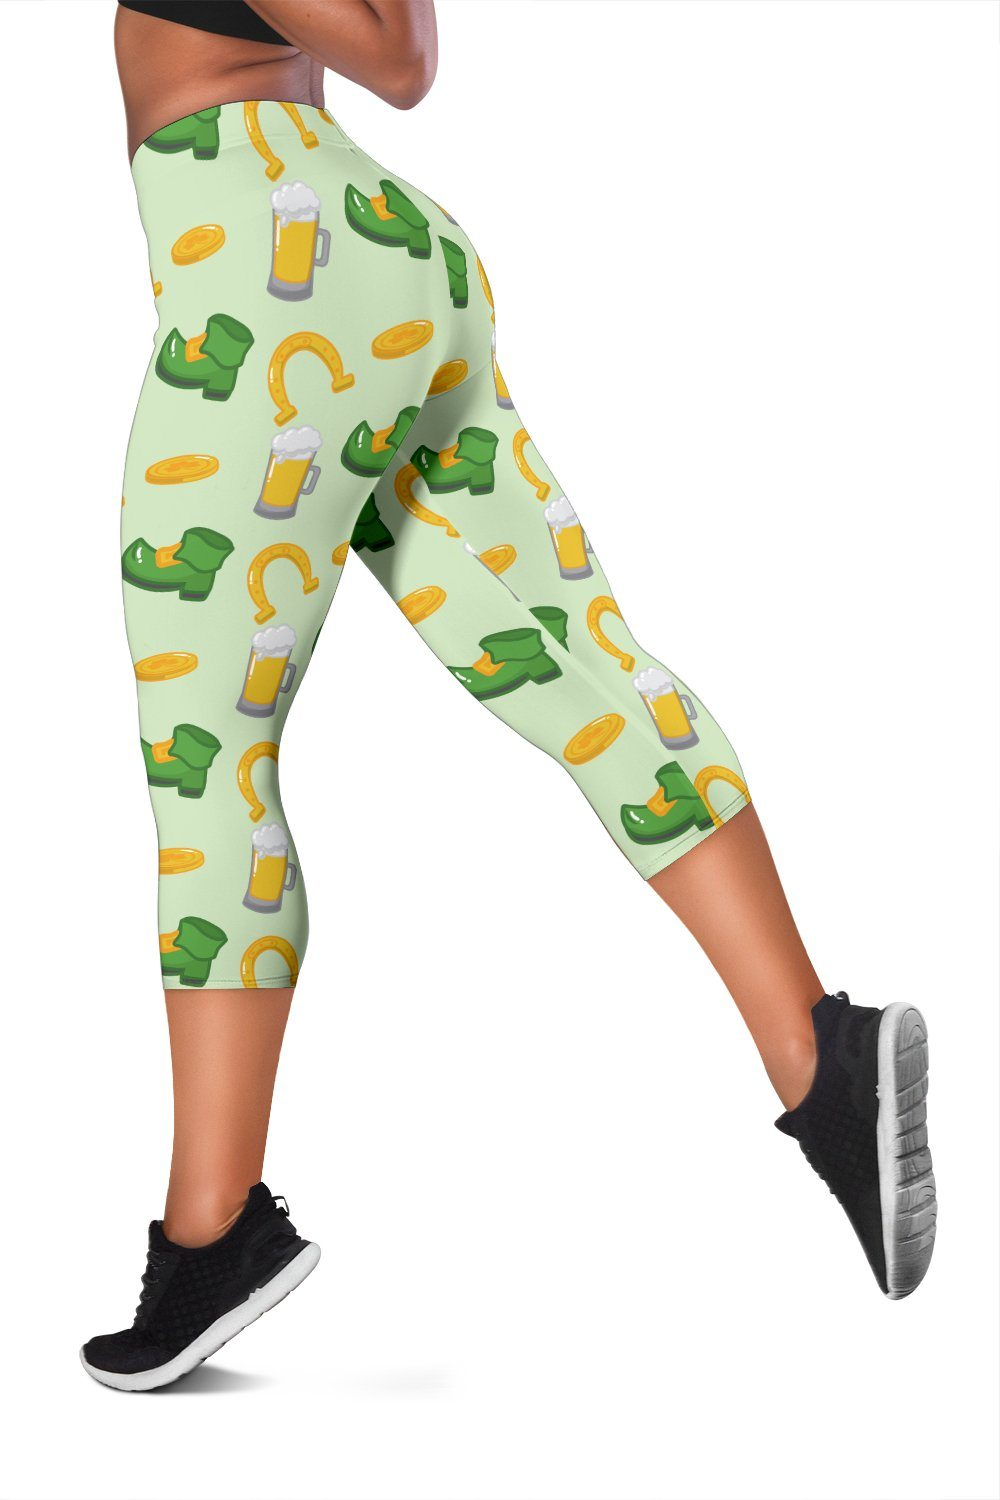 St Patrick's Day Horseshoe, Boots, Beer Pattern Print Workout Capris - Snappy Creations